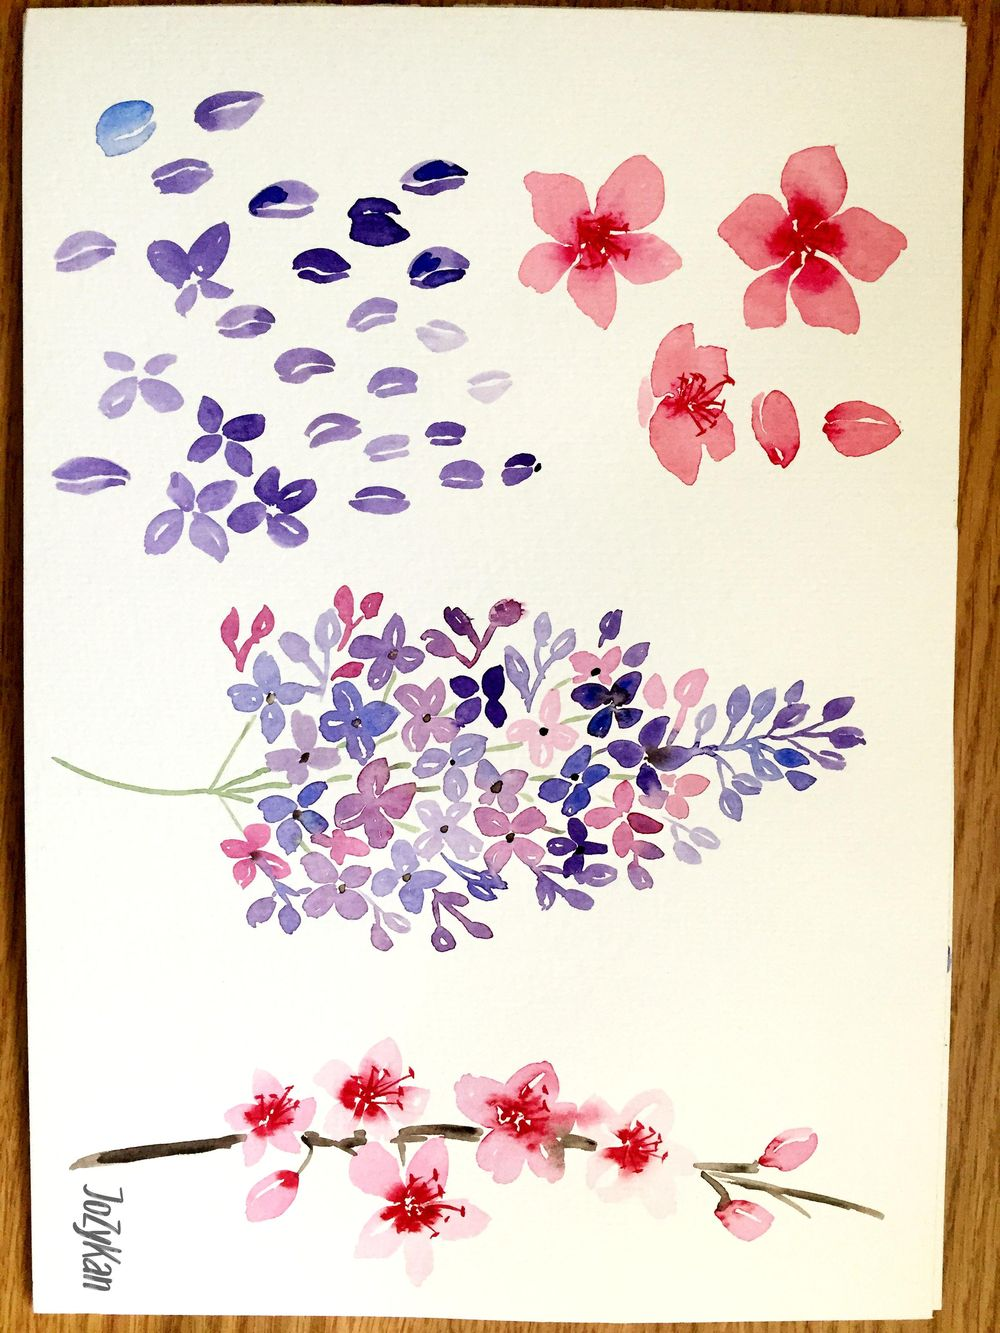 Loose spring florals - image 1 - student project